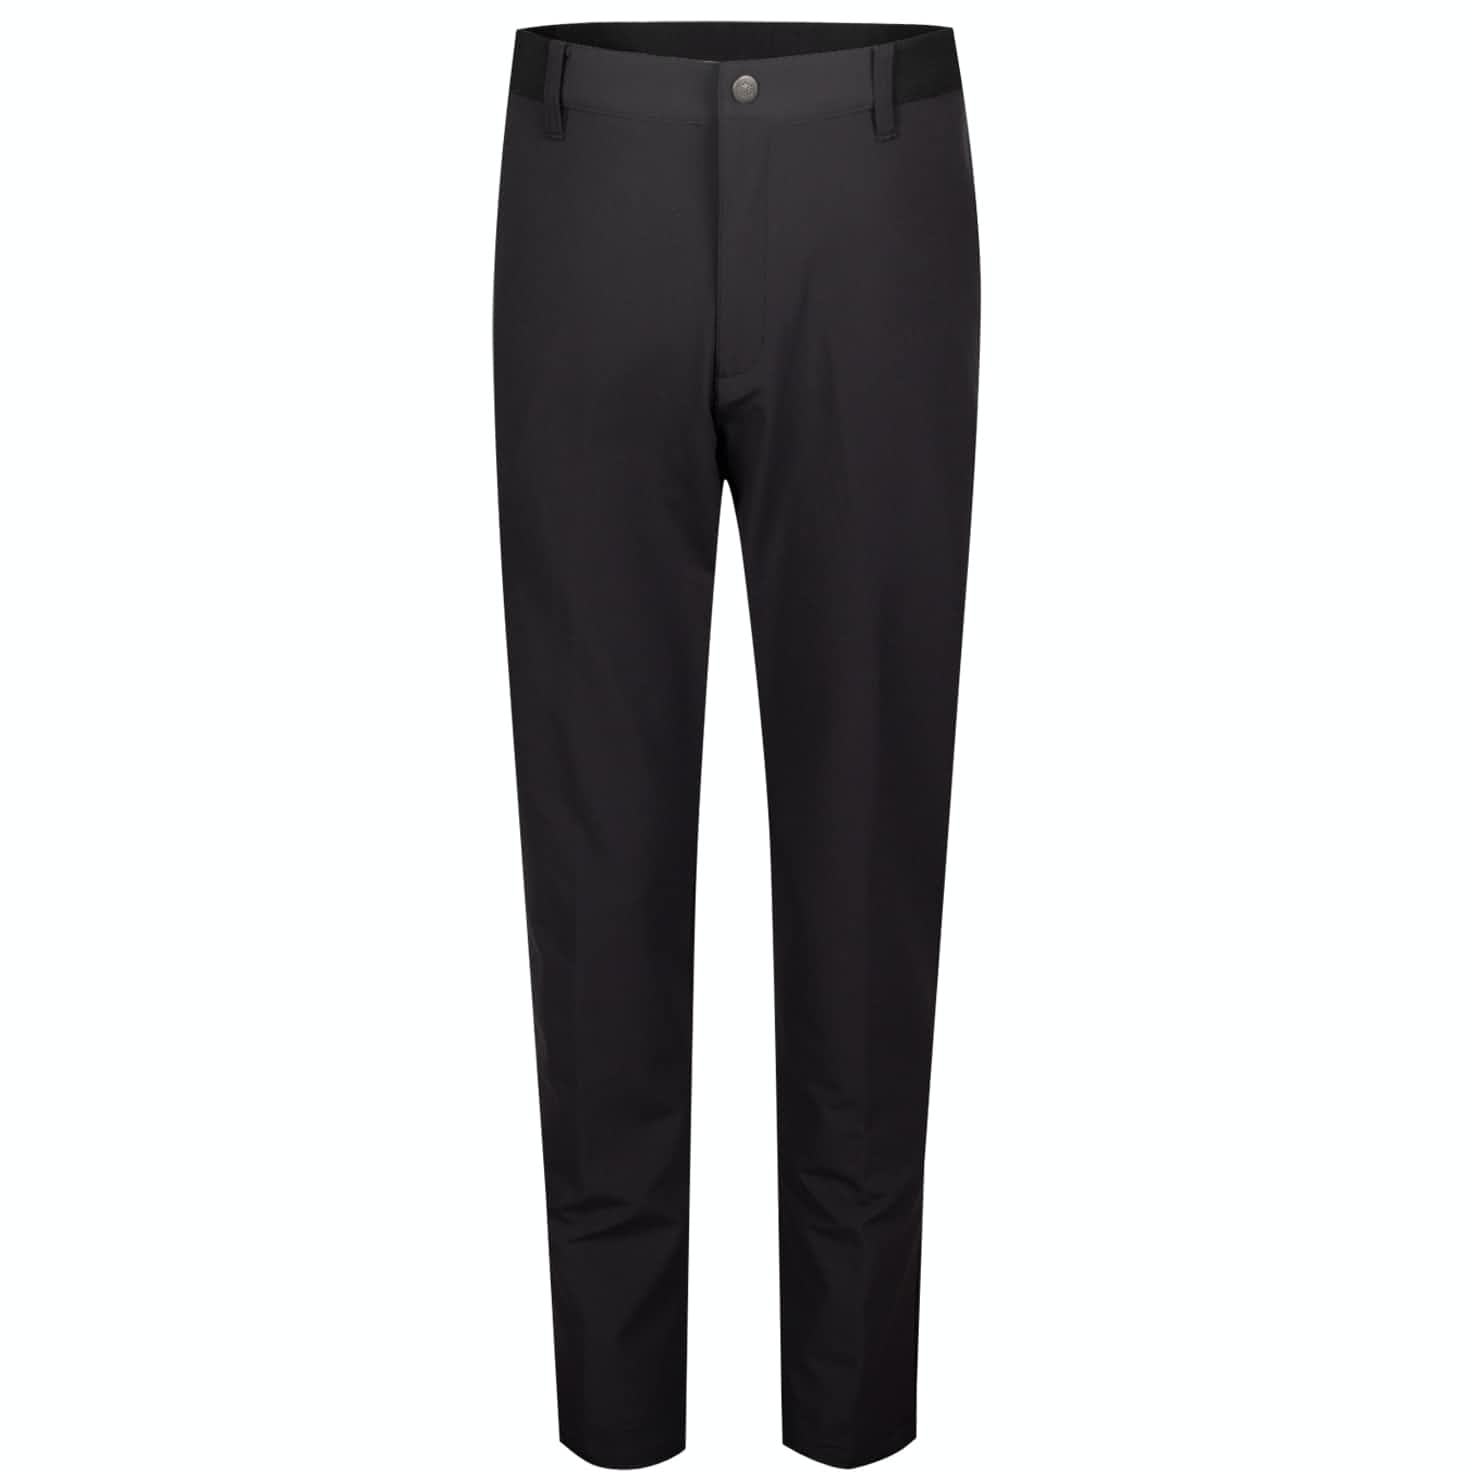 Stretch Utility Warm Pants 2.0 Black - AW19